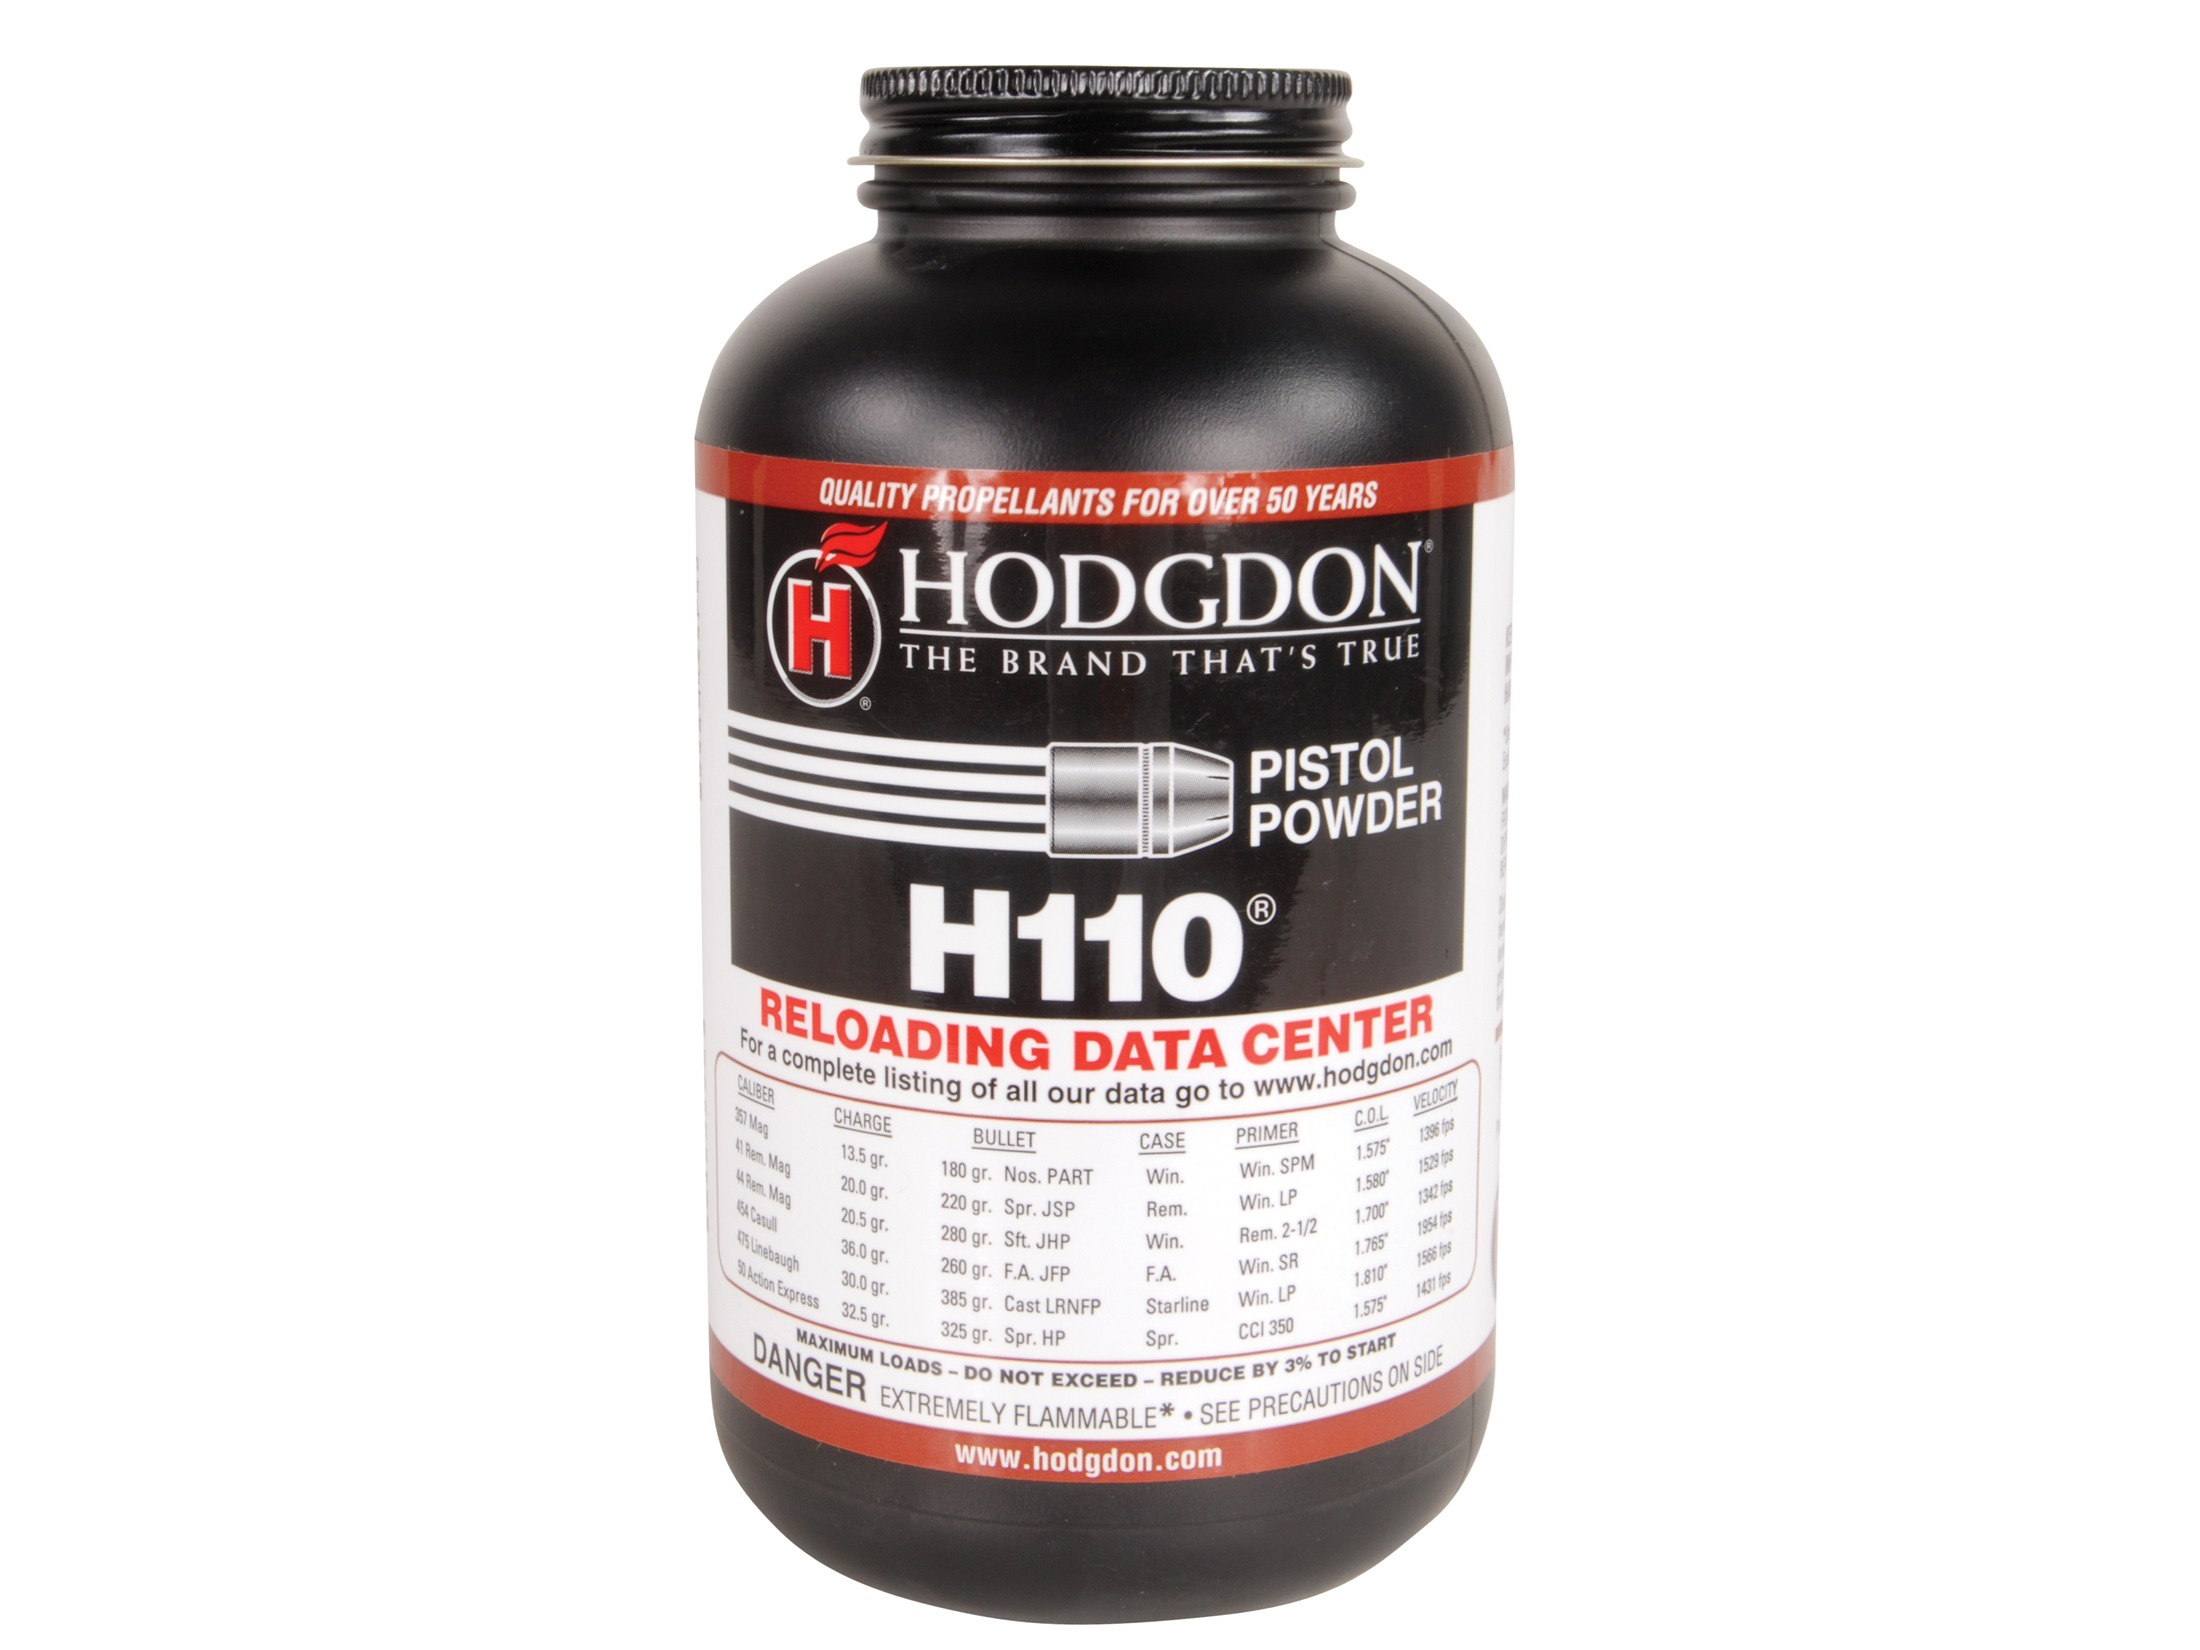 HODGDON H110 SMOKELESS POWDER